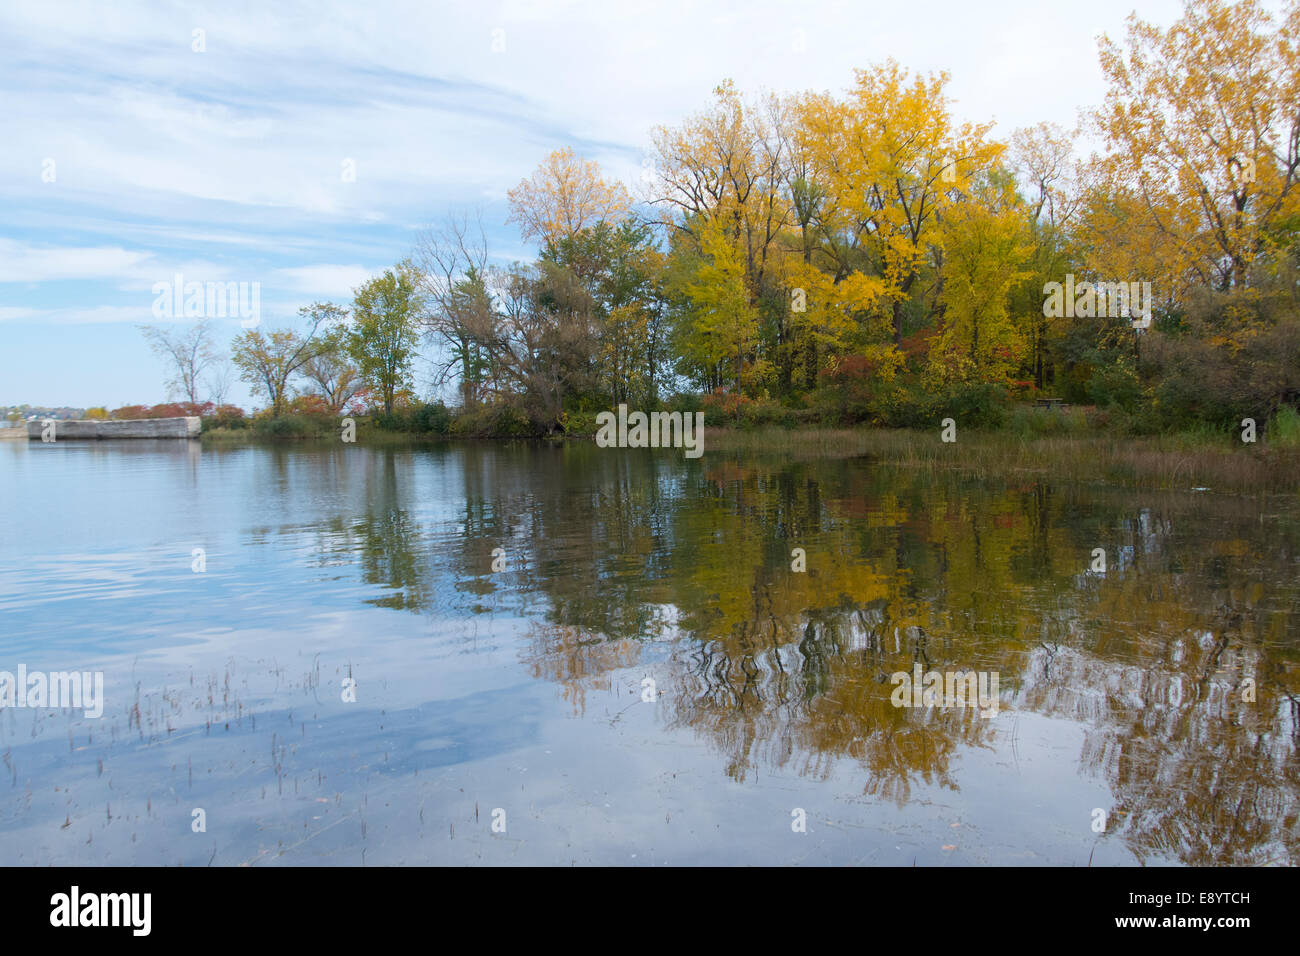 A view of a basin beside the entrance to the Soulange Canal. - Stock Image